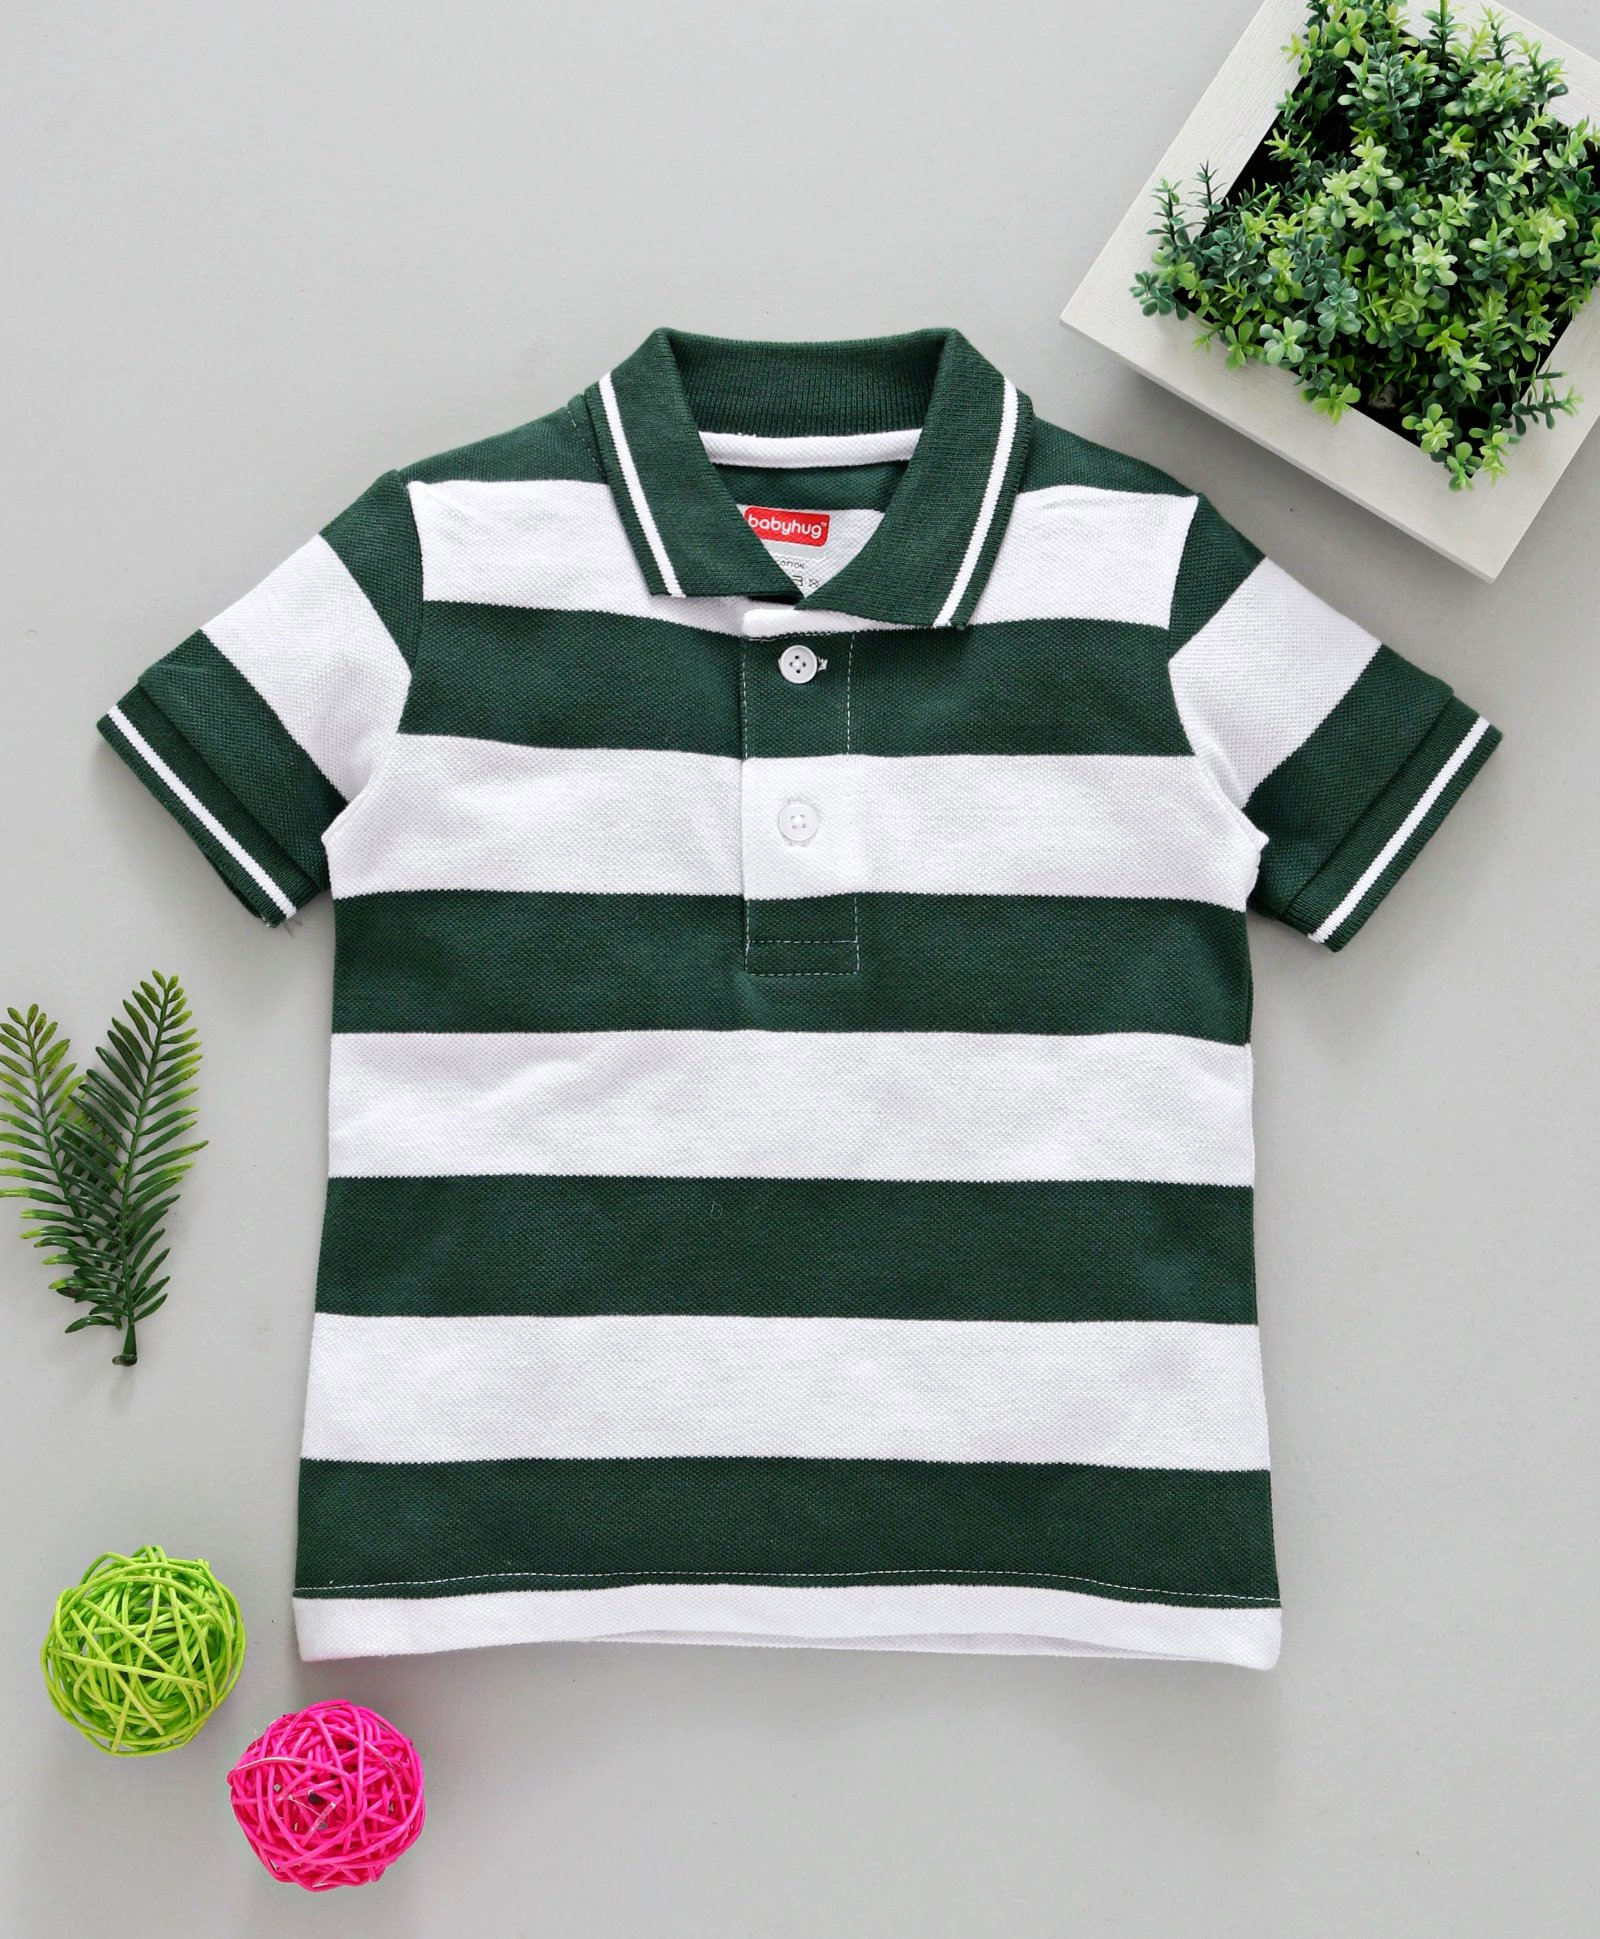 aa29bcb6 Babyhug Cotton Stripes Half Sleeves Pique Polo T-Shirt - Green White